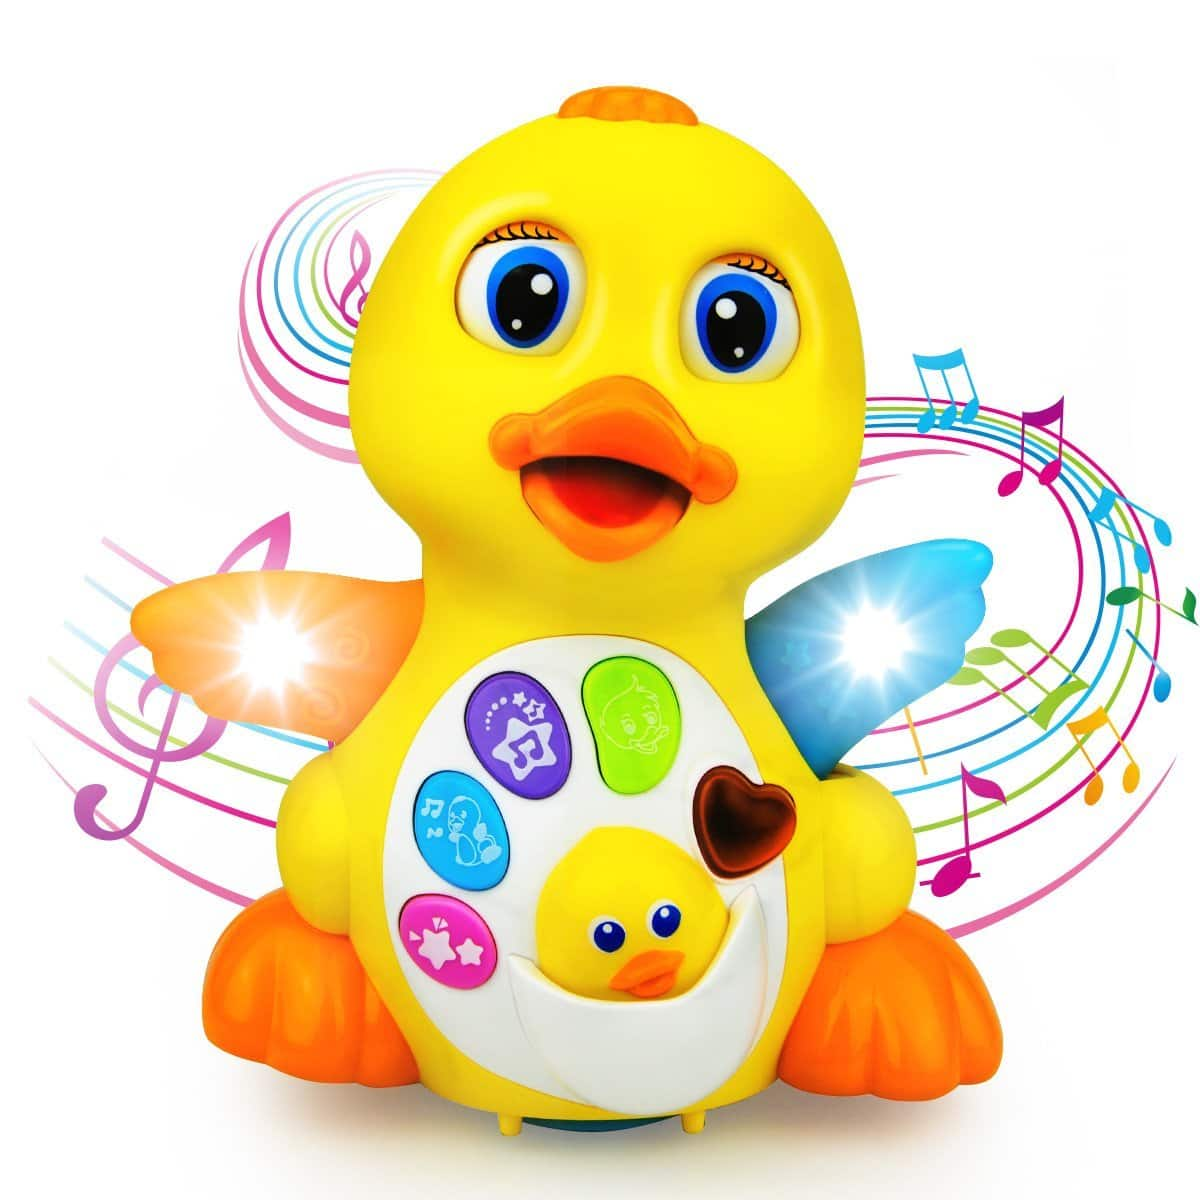 Dancing and Singing Duck Toy $10.19 + FS (Prime)